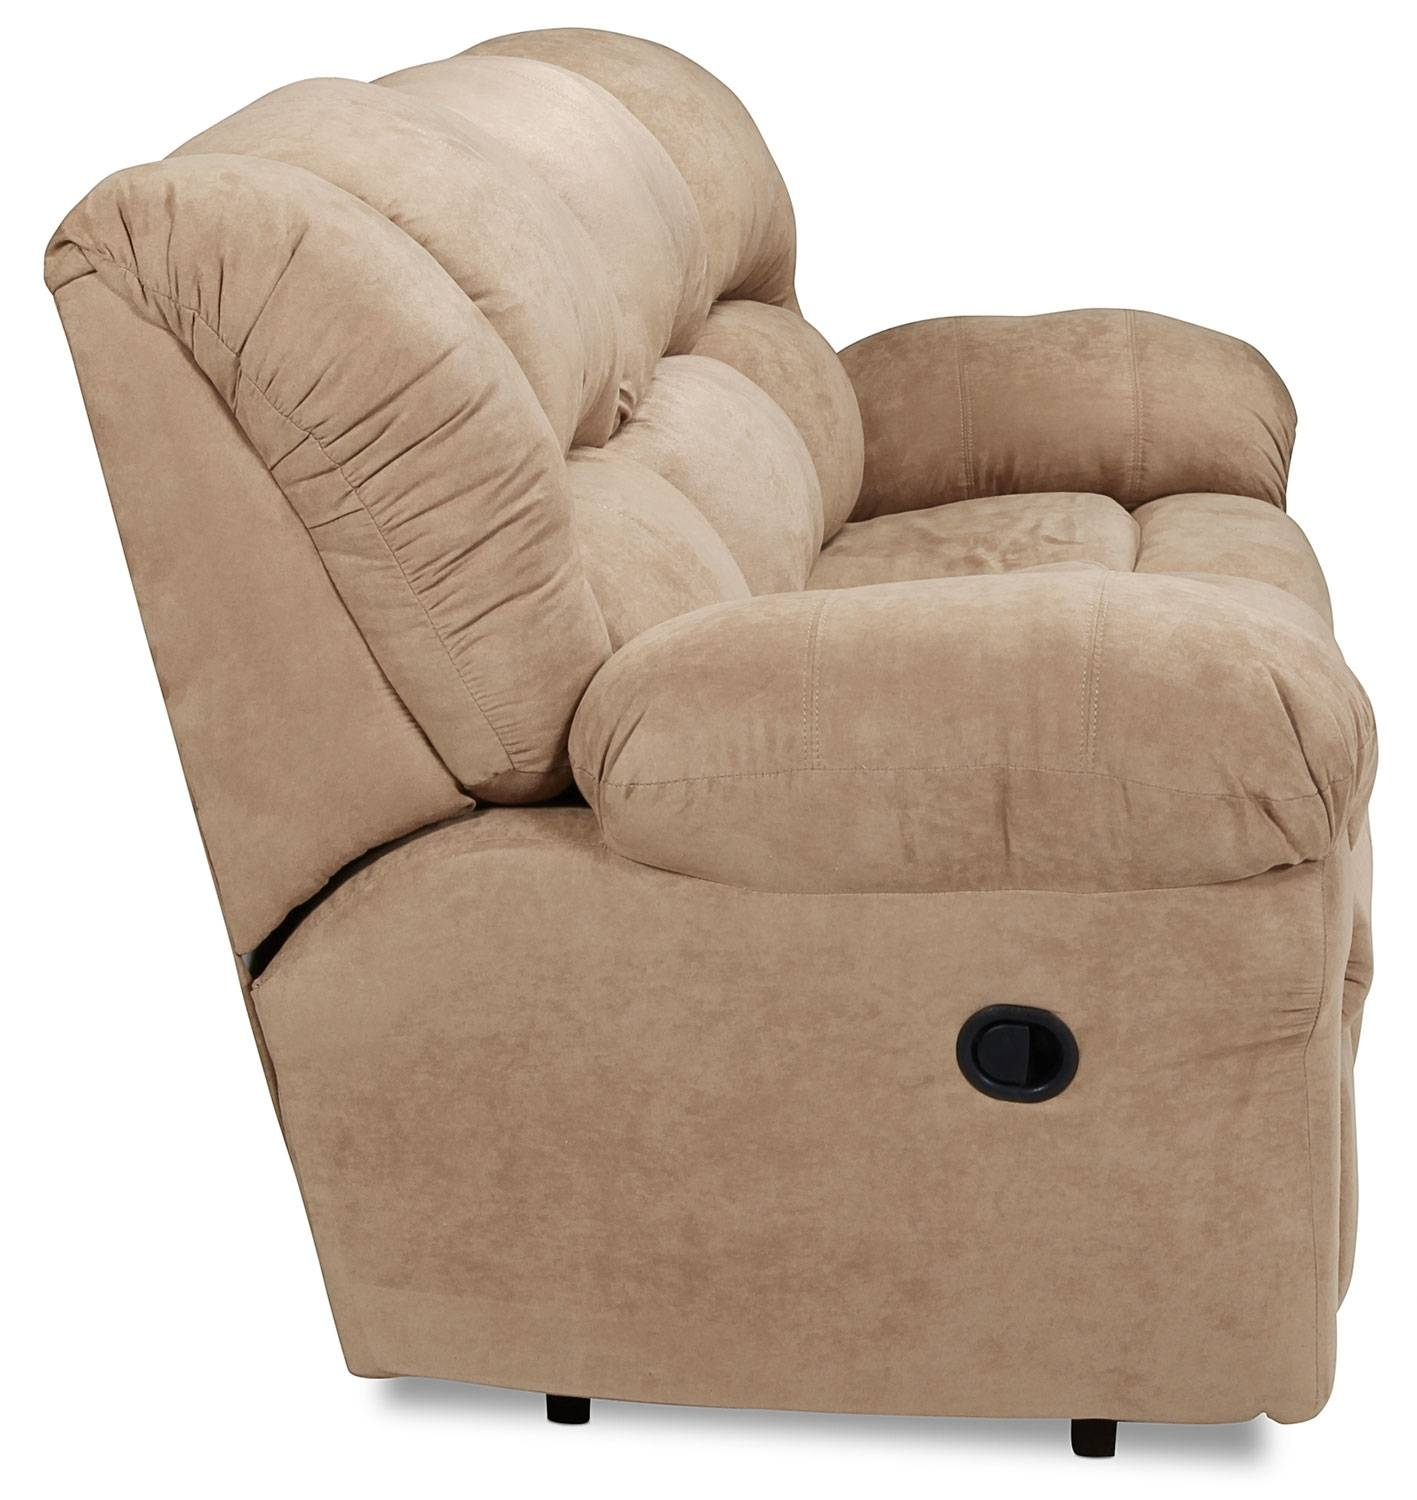 Decker Reclining Sofa - Camel | Levin Furniture with Recliner Sofa Chairs (Image 11 of 30)